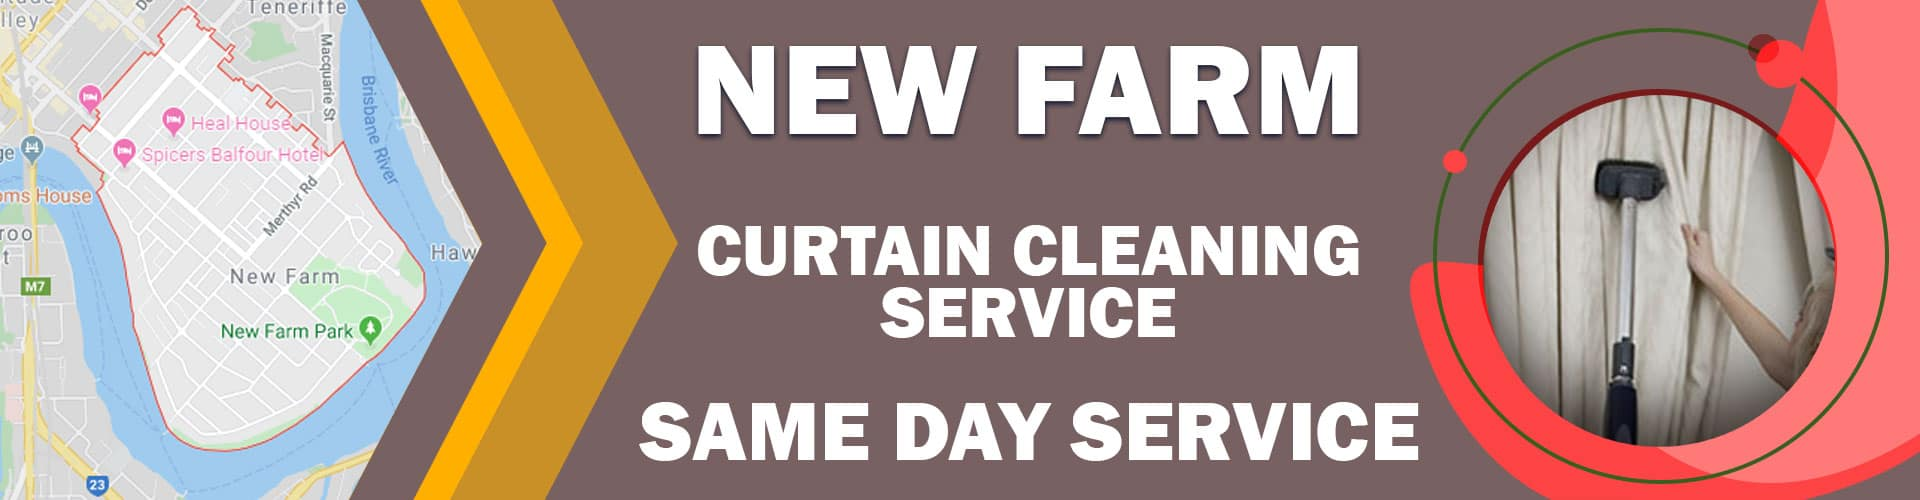 CURTAIN CLEANING NEW FARM